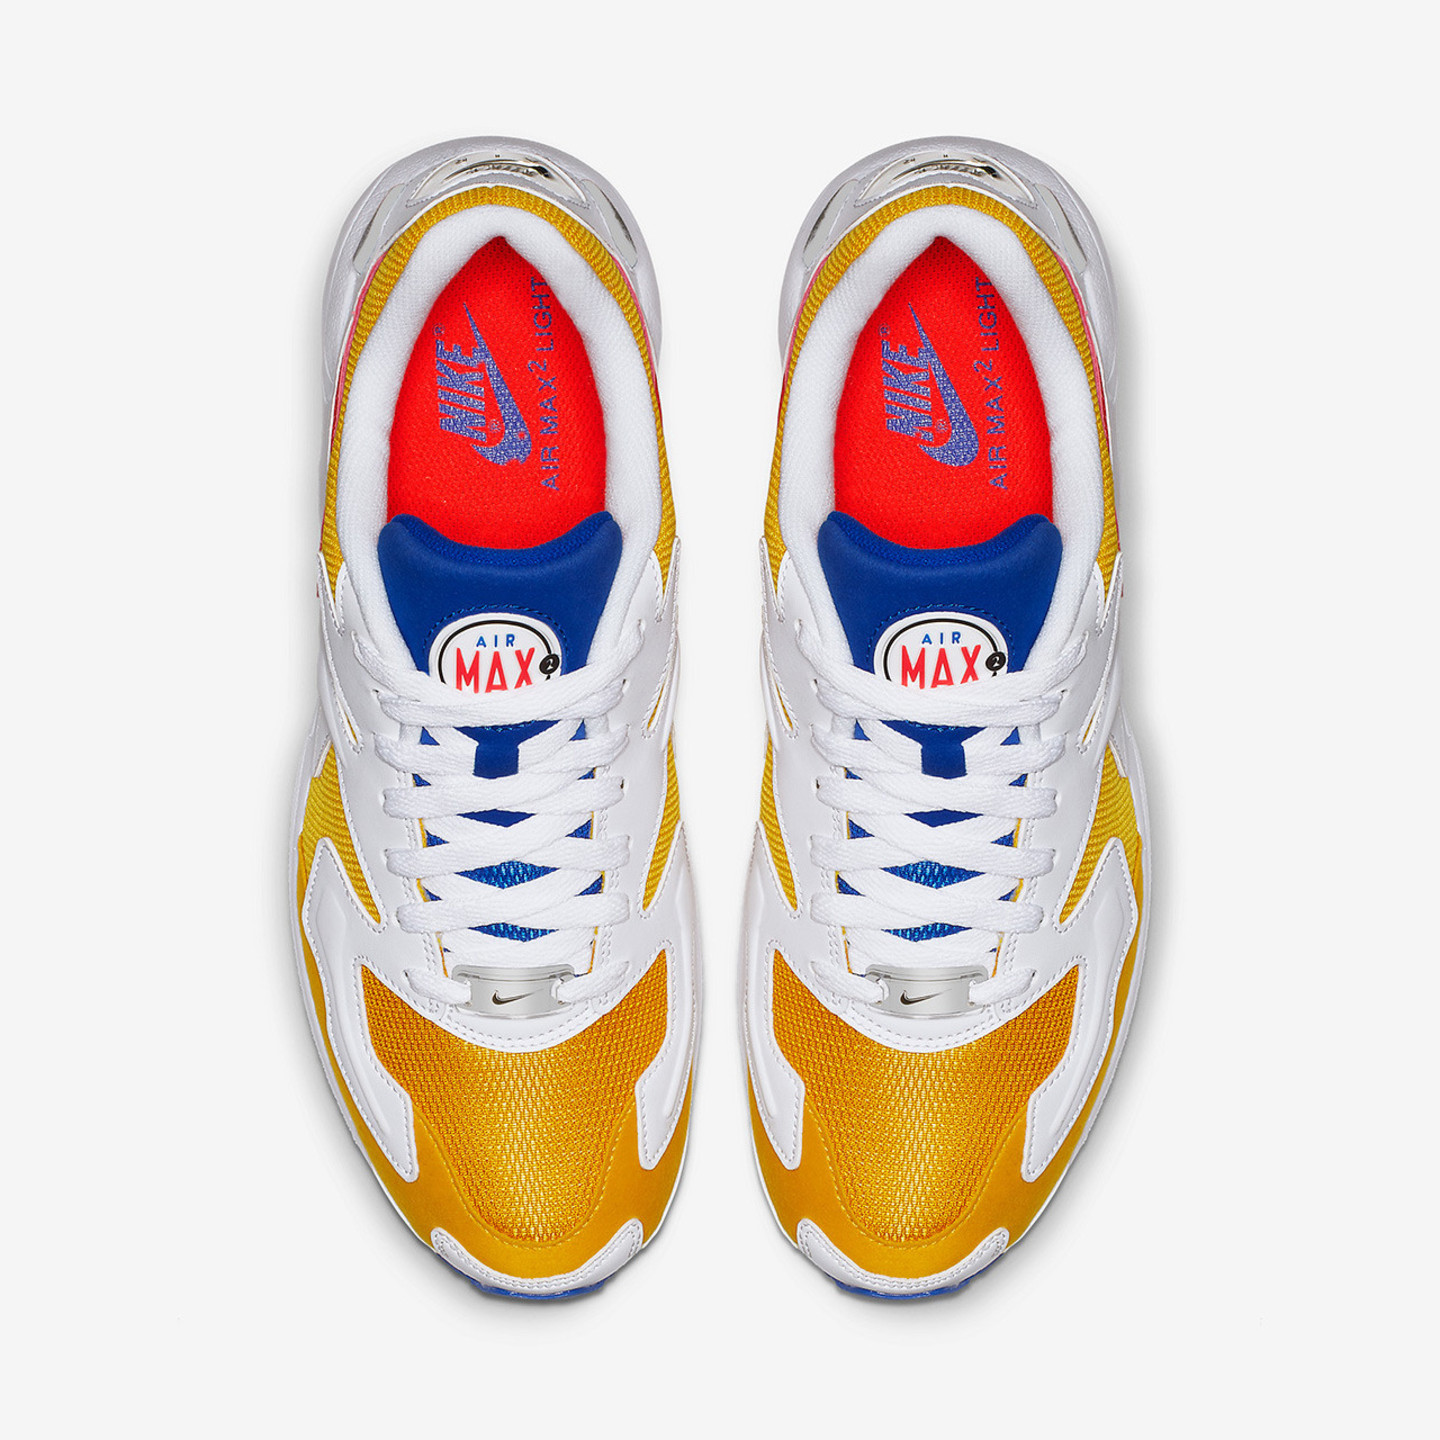 Nike Air Max 2 Light University Gold / Flash Crimson / Racer Blue AO1741-700